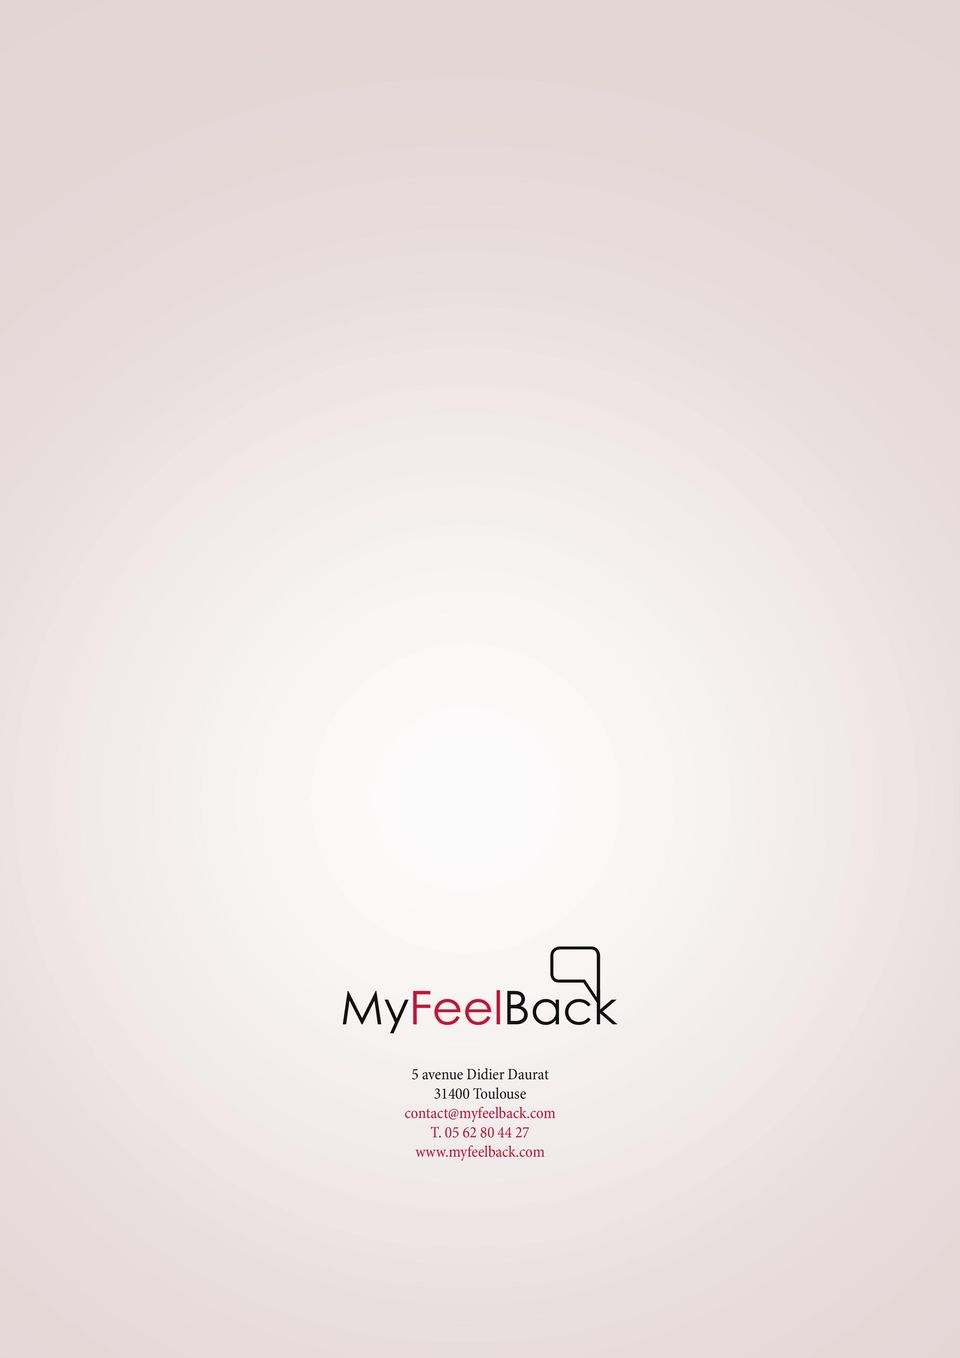 contact@myfeelback.com T.